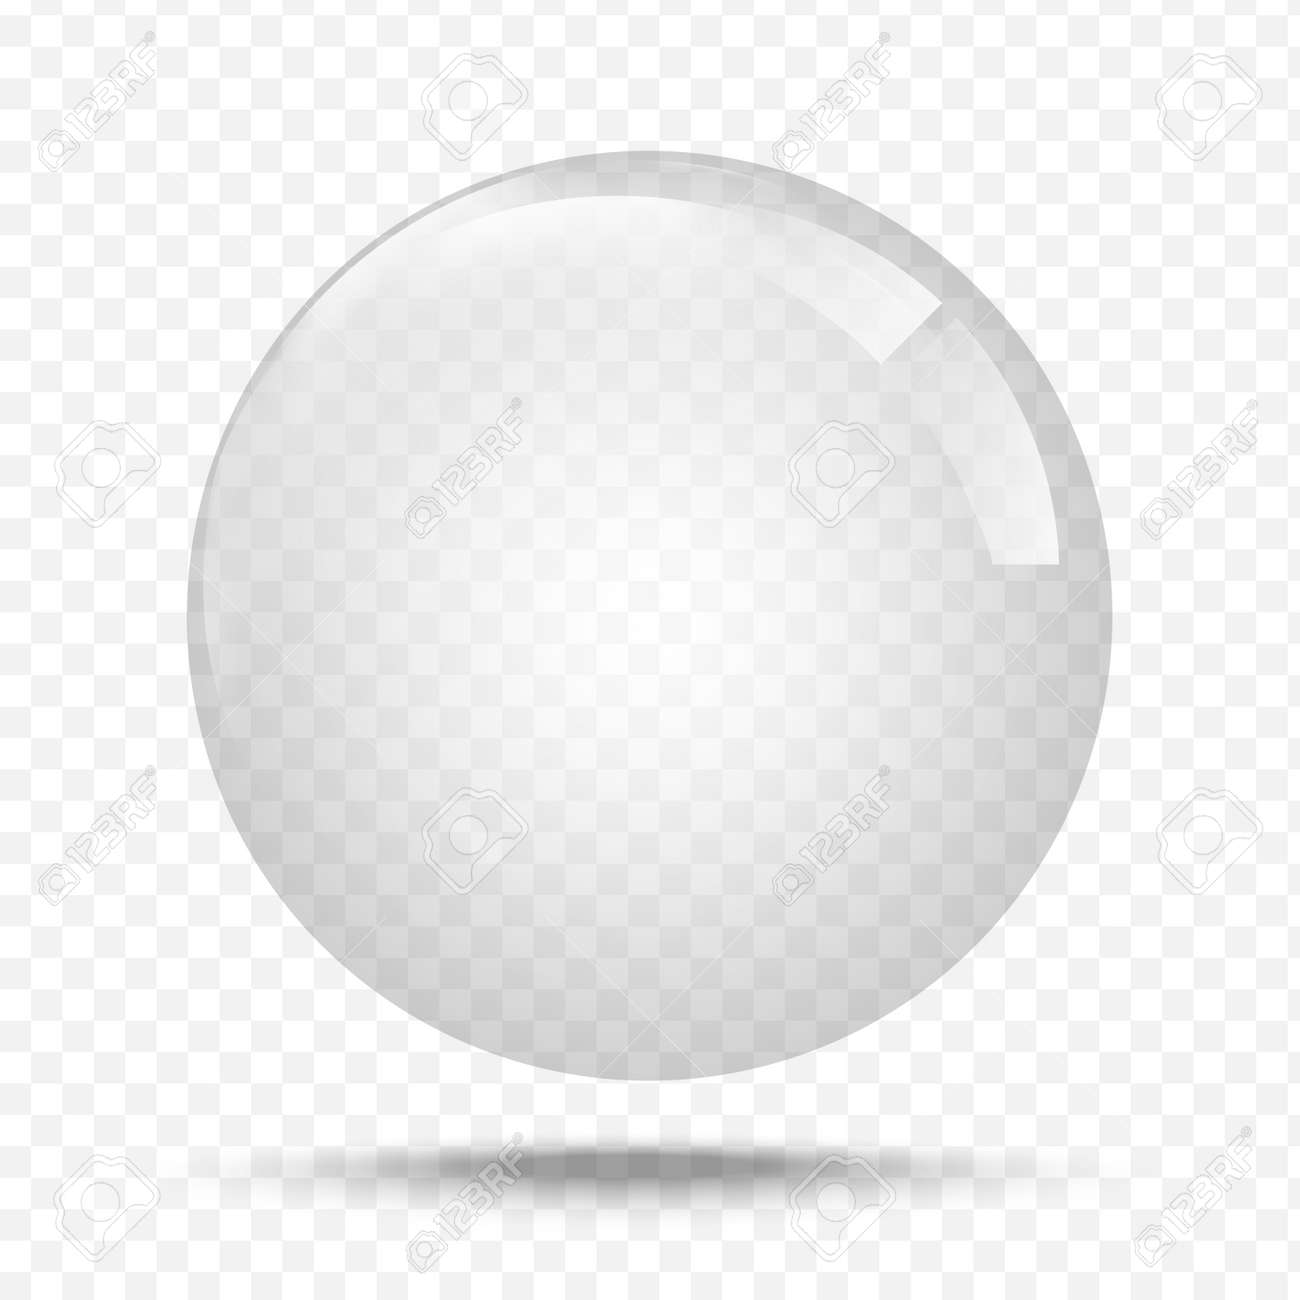 Transparent glas. White pearl, water soap bubble, shiny glossy orb realistic design elements - 137218225